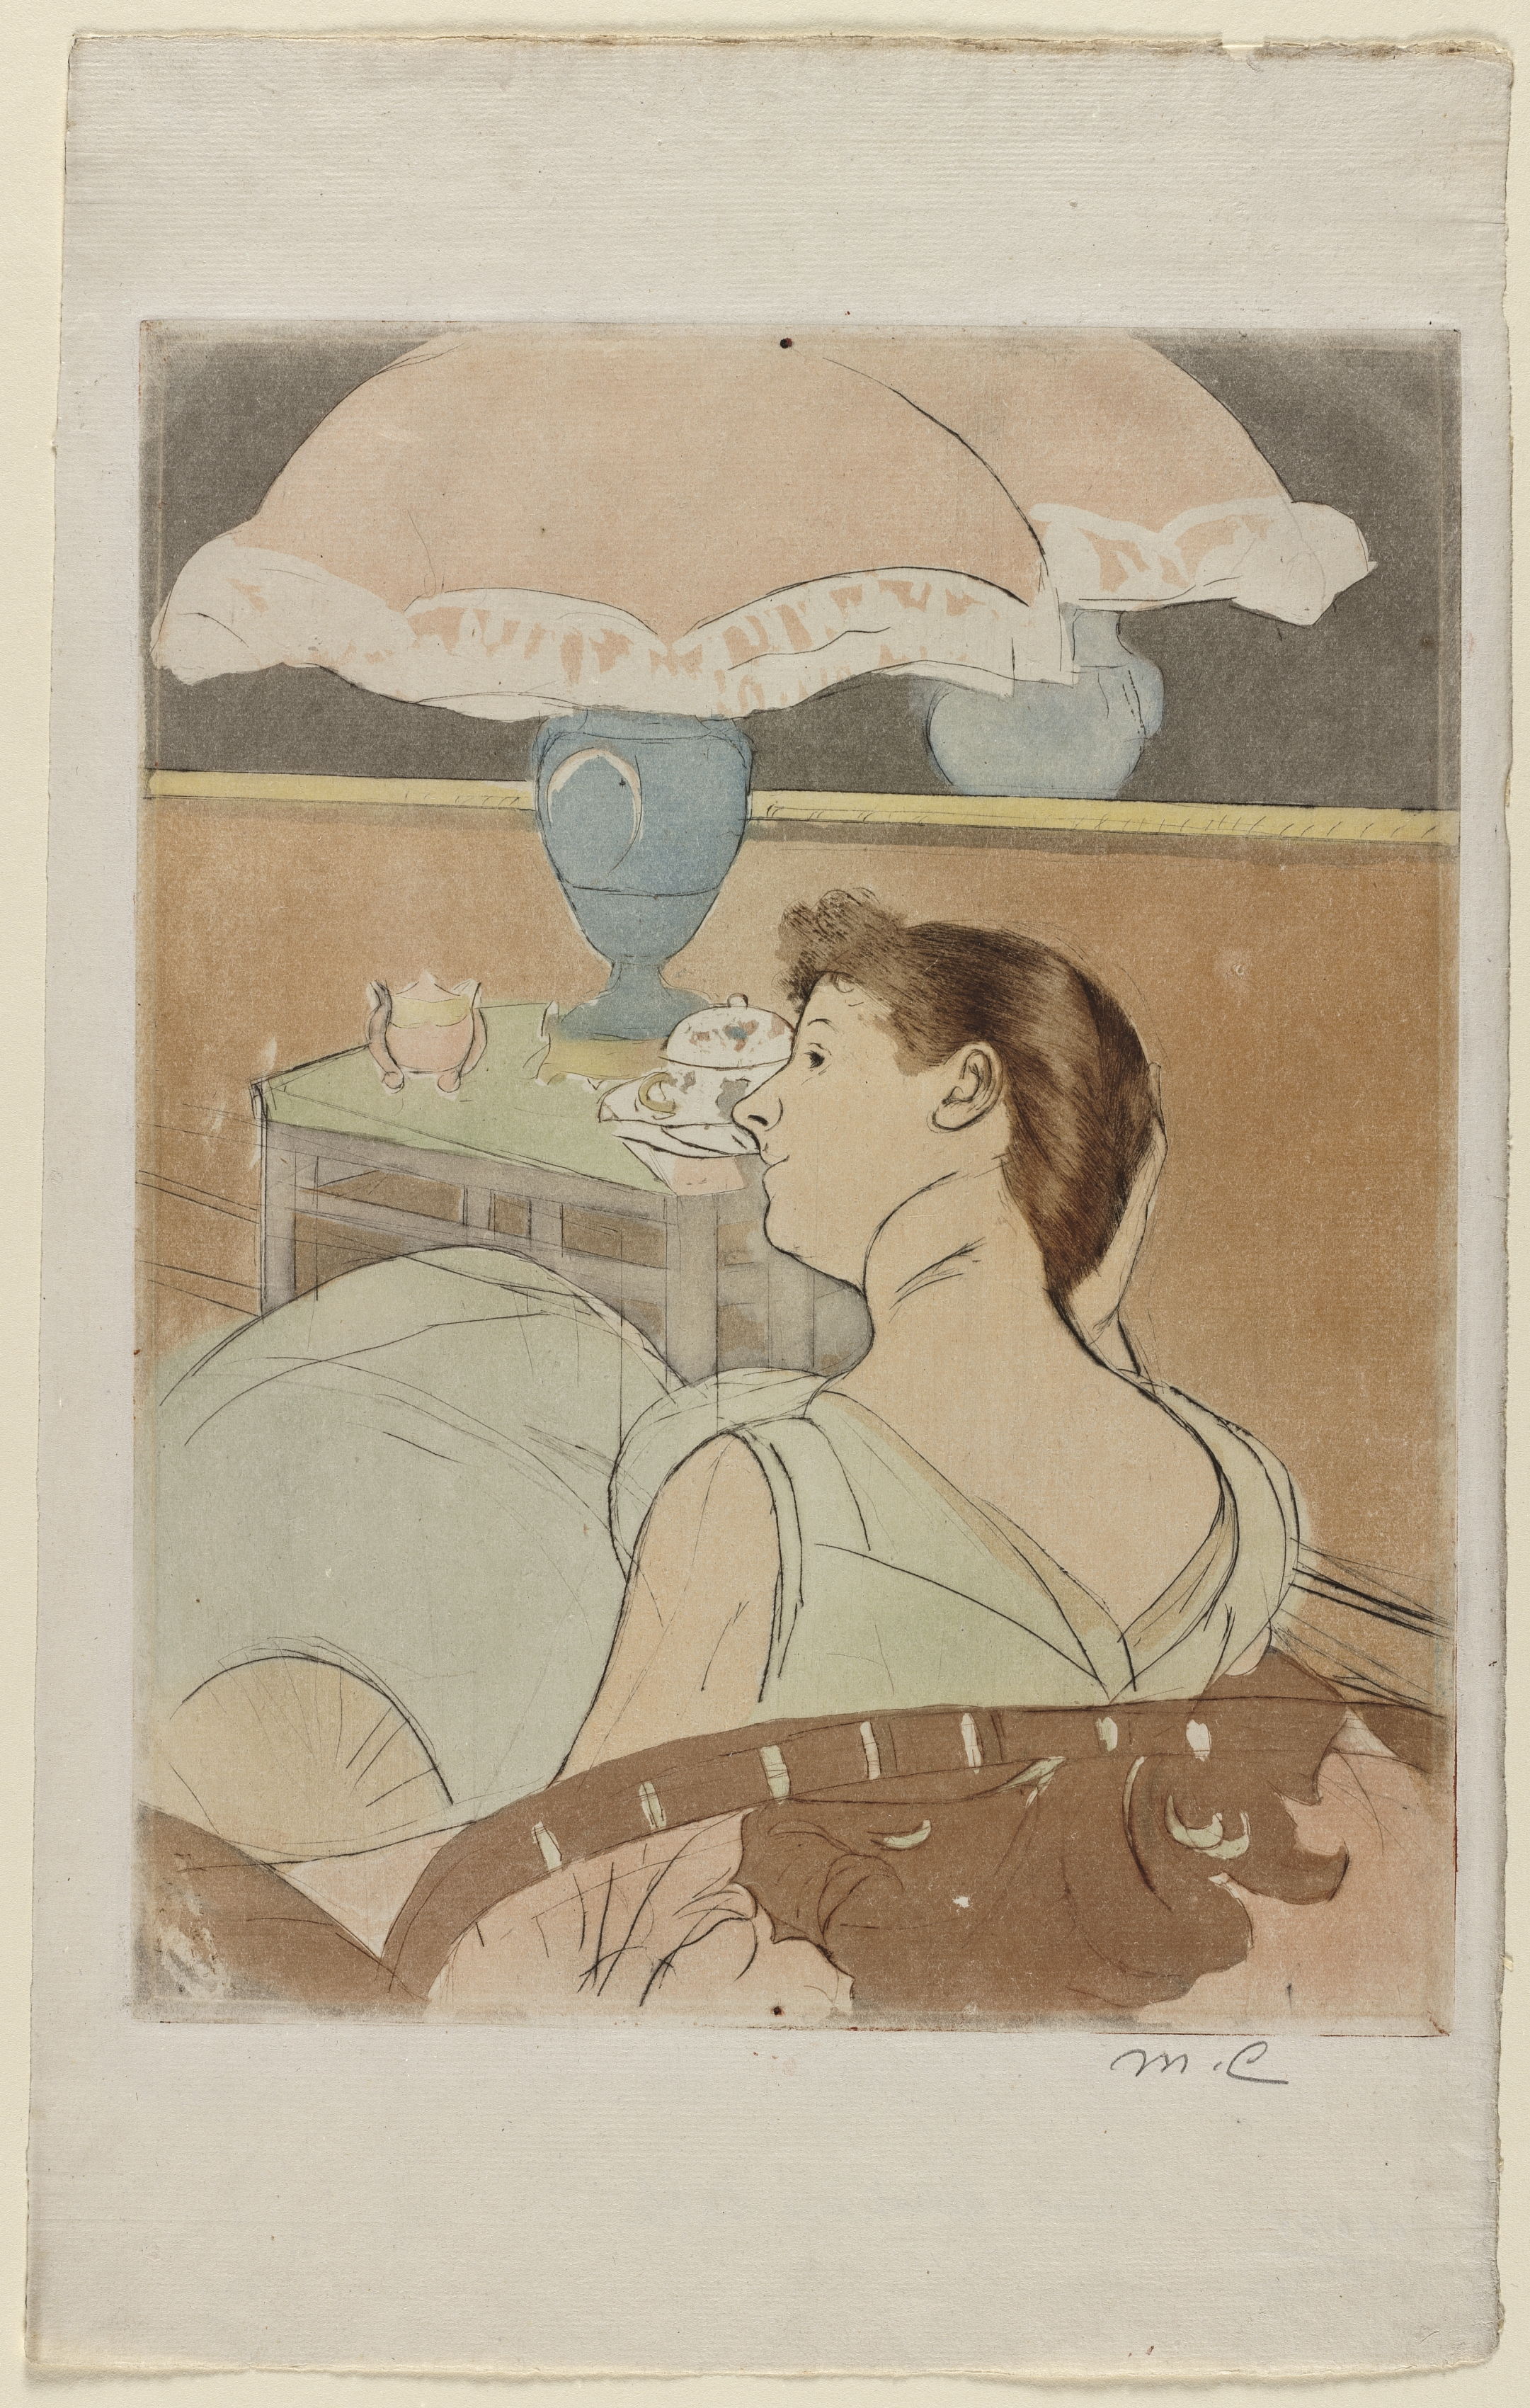 The Lamp by Mary Cassatt, from The Cleveland Museum of Art